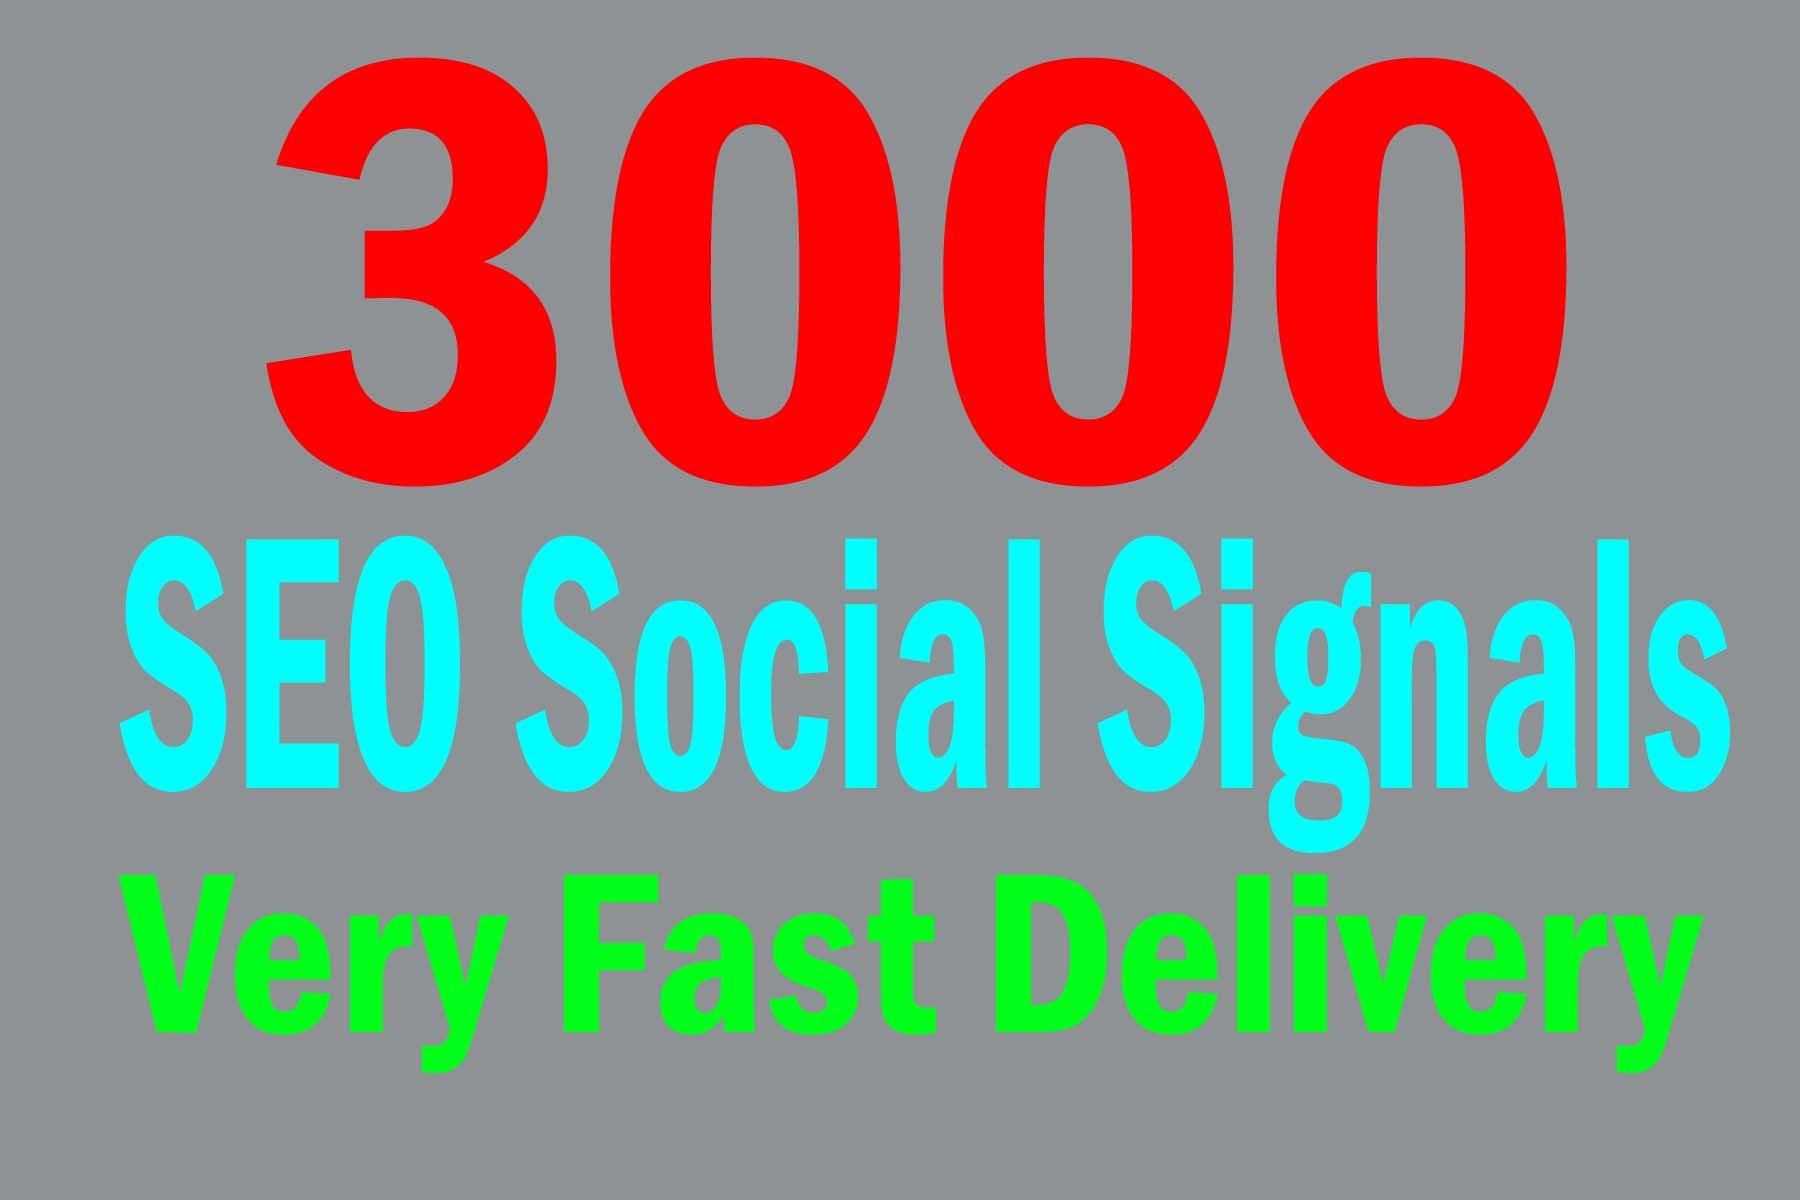 Manually-Create-HQ-3000-Essential-SEO-Amicable-Social-Signals